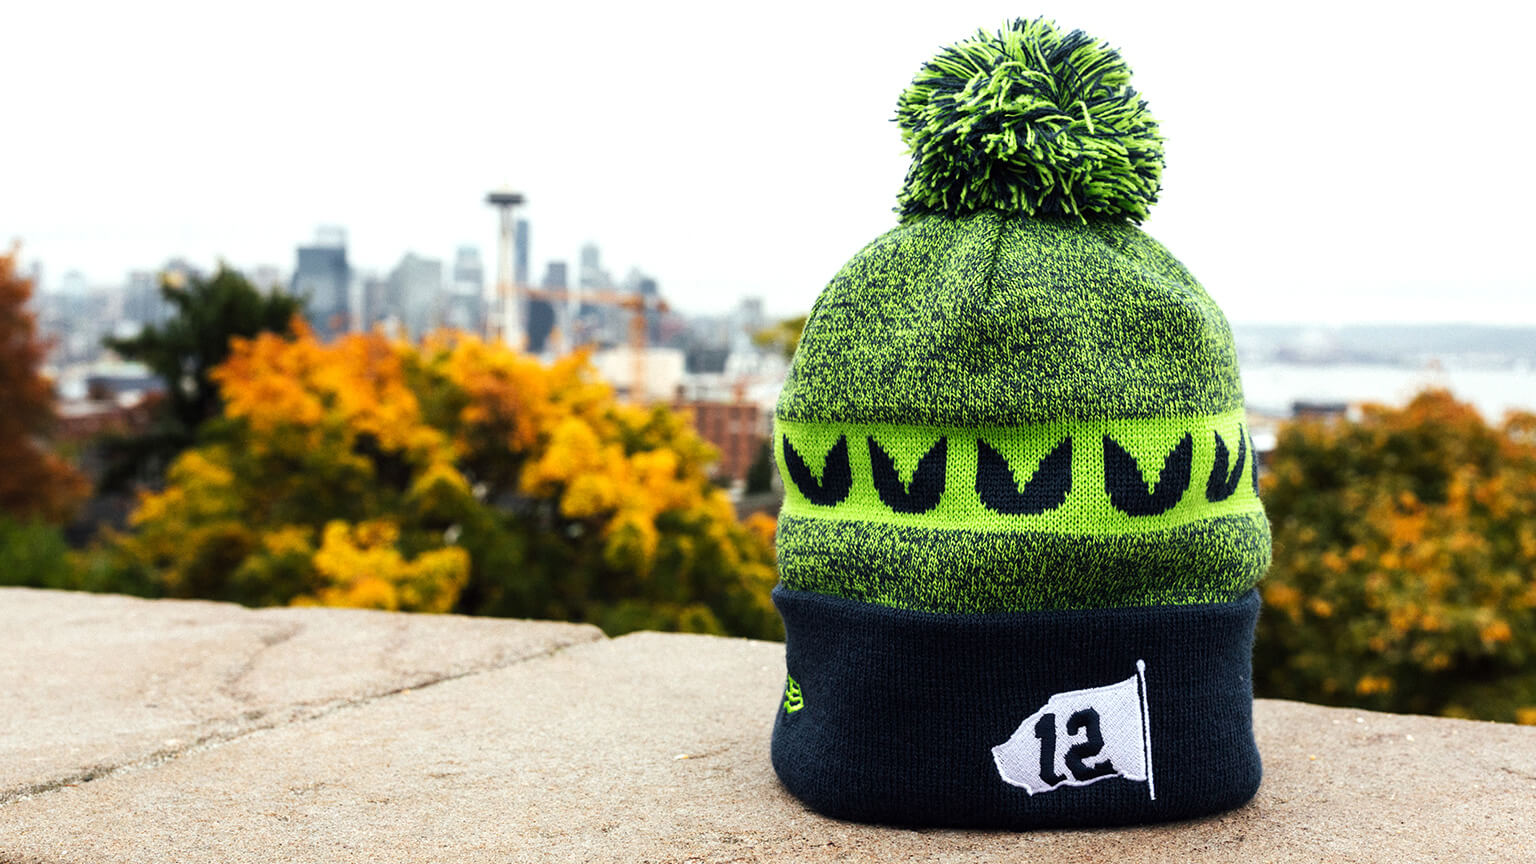 Knit hat with pom on top - 12 flag decal in fold up flap